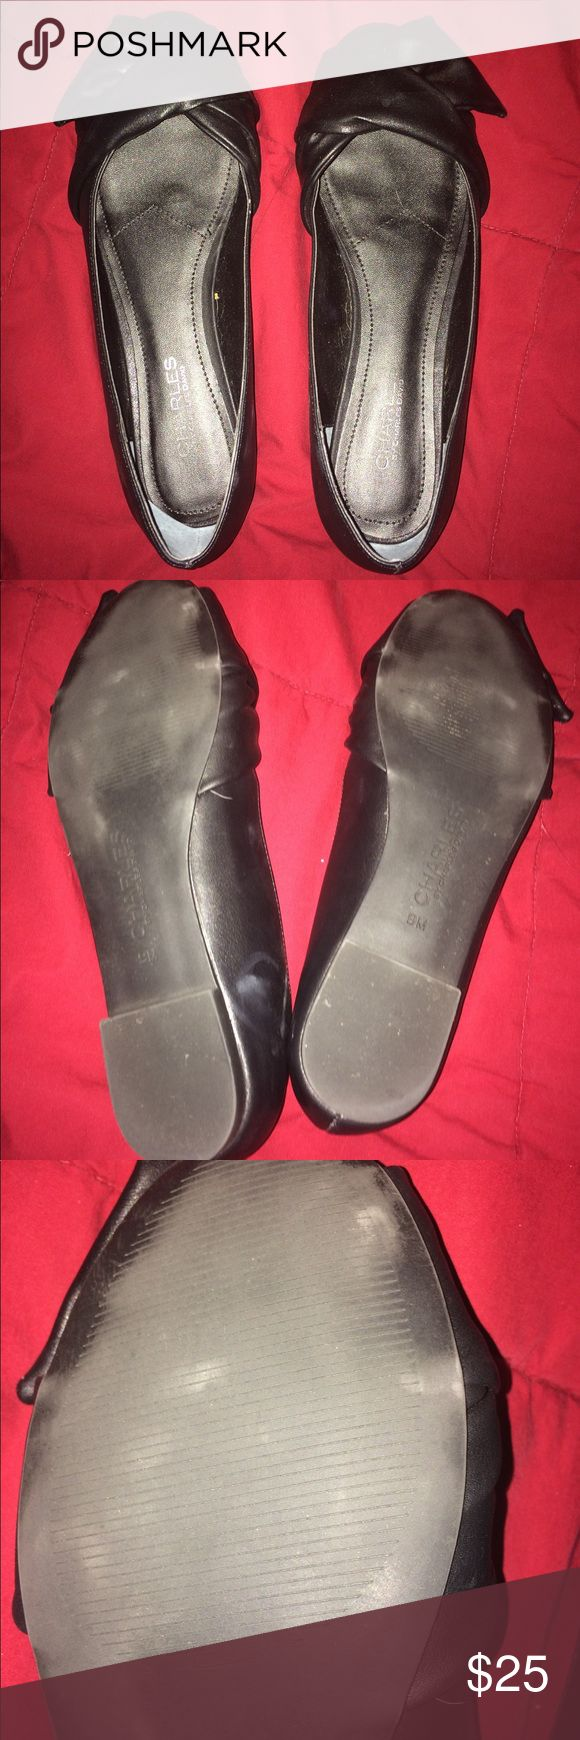 Charles by Charles David flat Black rounded toe flat by Charles David. Worn twice in excellent condition size 9 medium. You can see in the bottom pictures of mild scuffing on the sole of the shoe. I accept bundles and offers Charles David Shoes Flats & Loafers